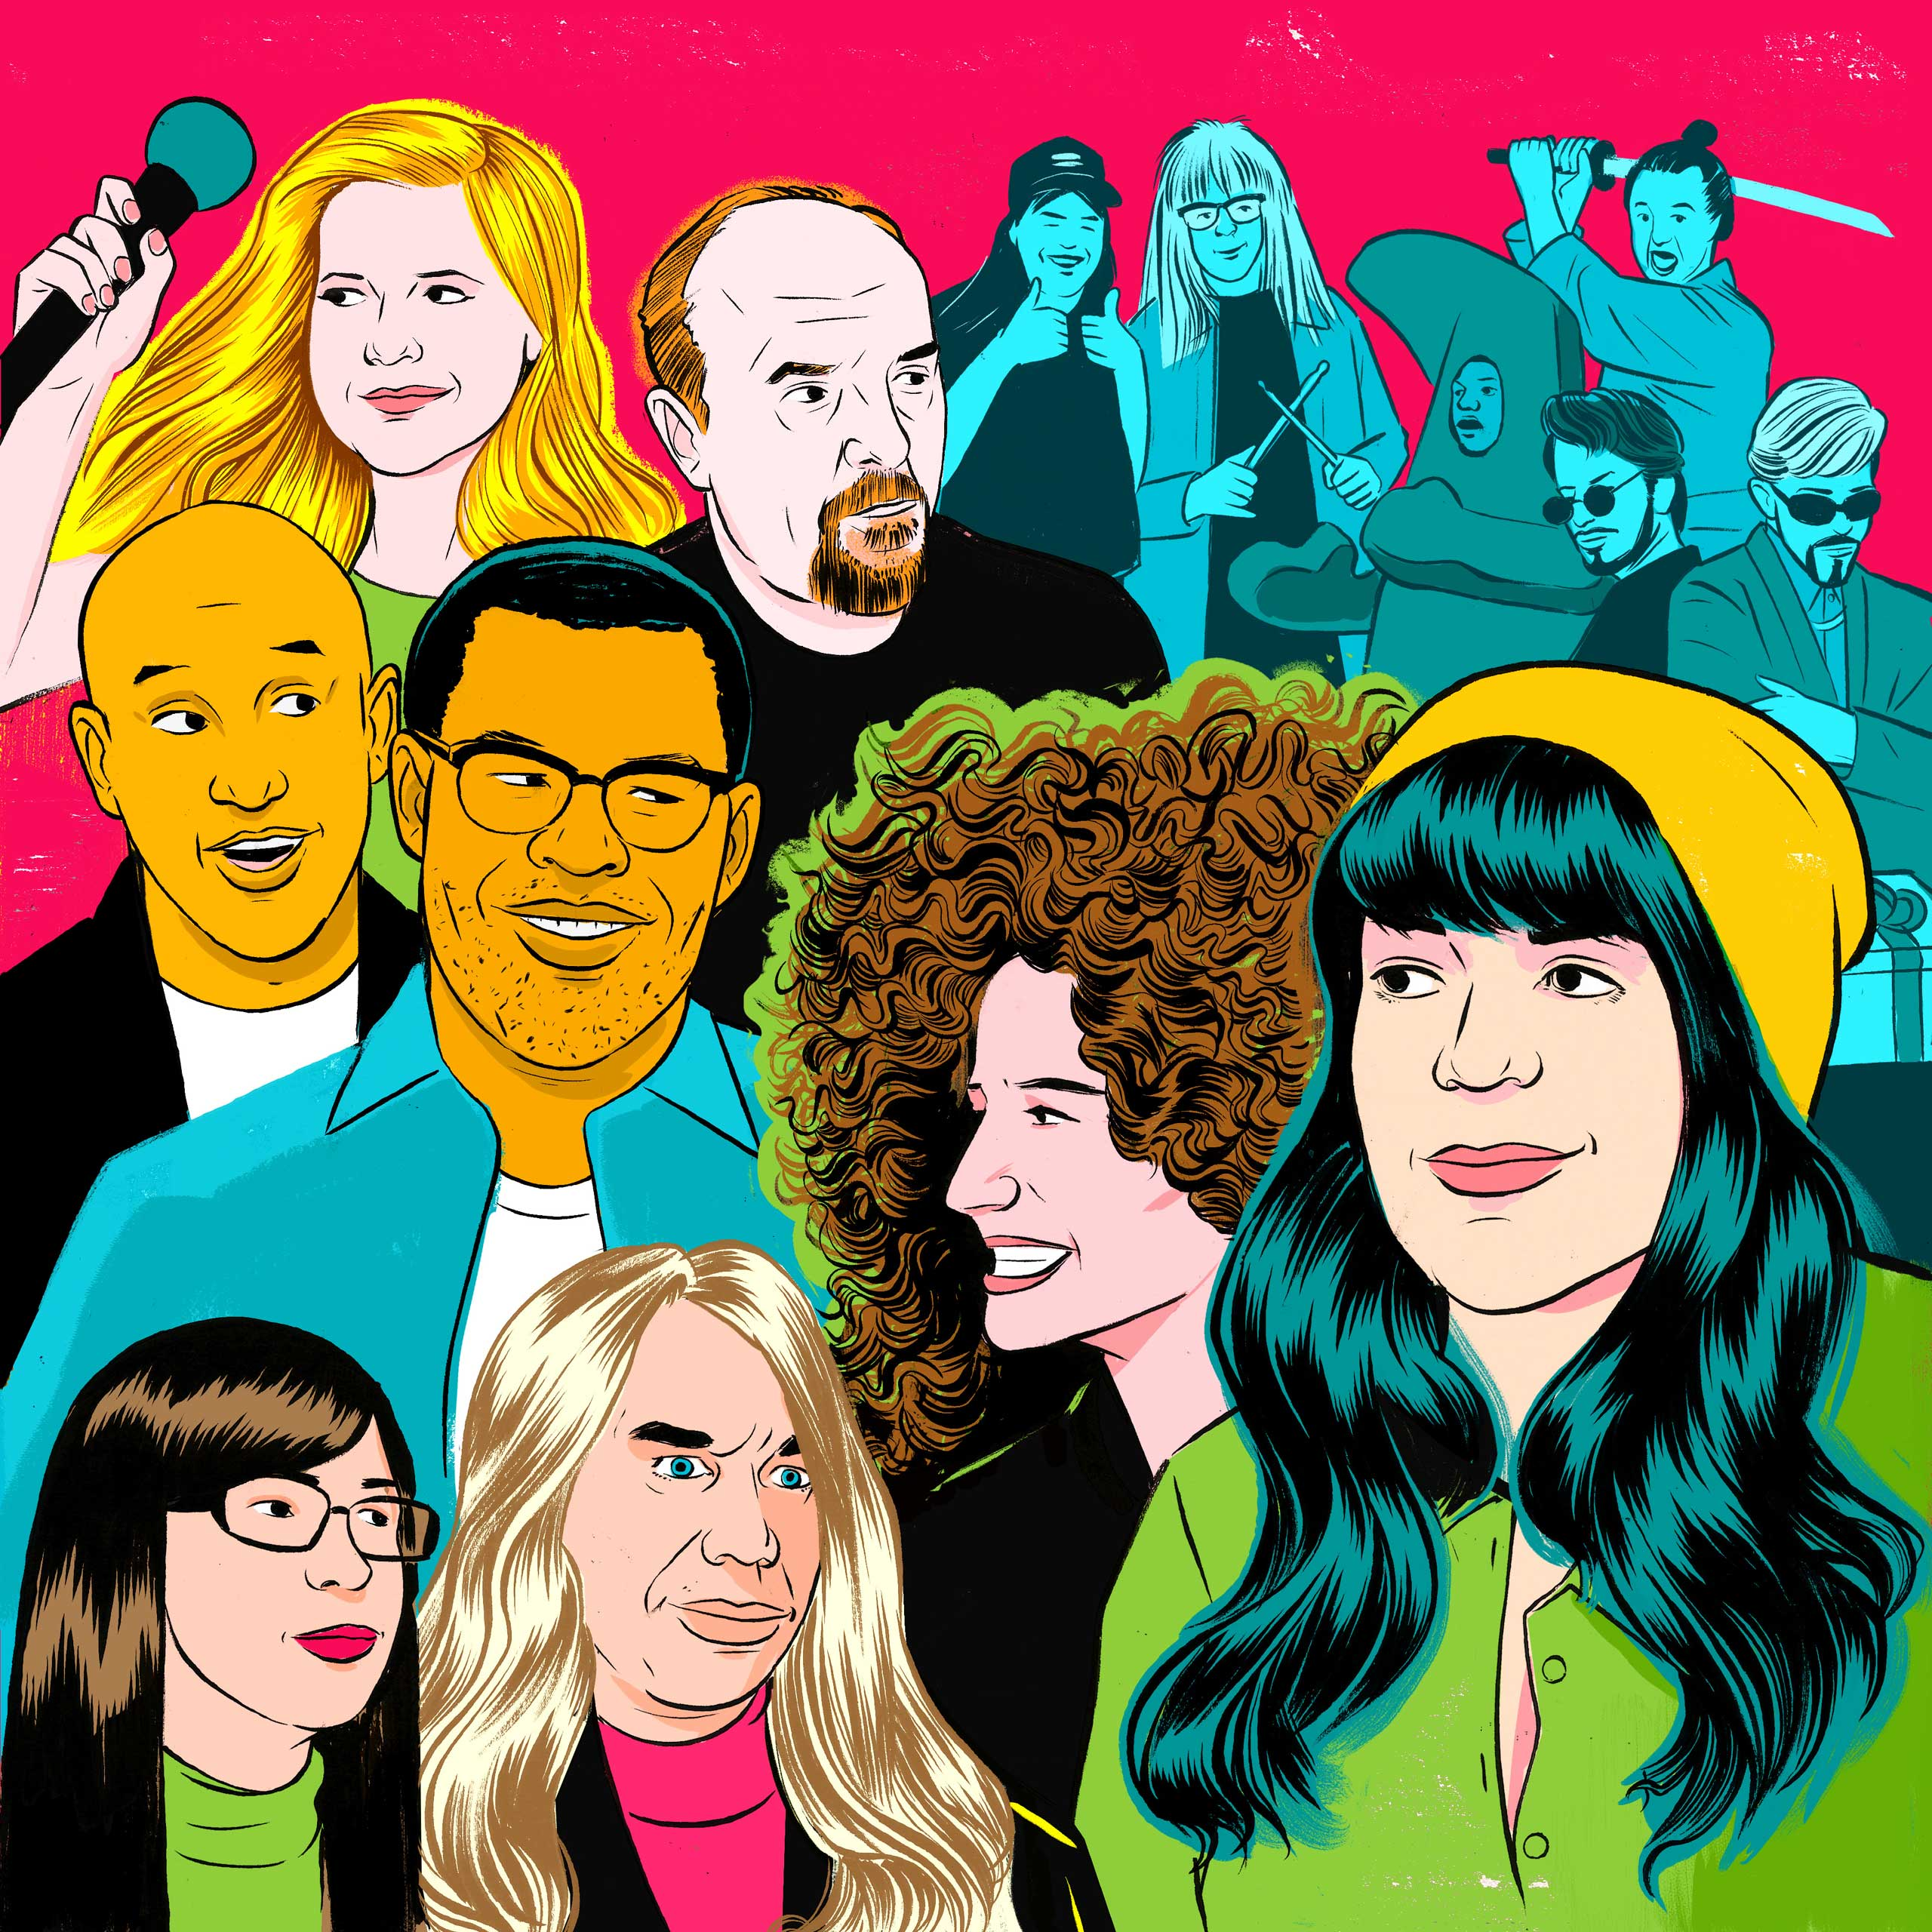 As the ghosts of SNL past recede, today's vital TV comics can be found on the likes of Inside Amy Schumer, Louie, Key and Peele, Portlandia and Broad City.